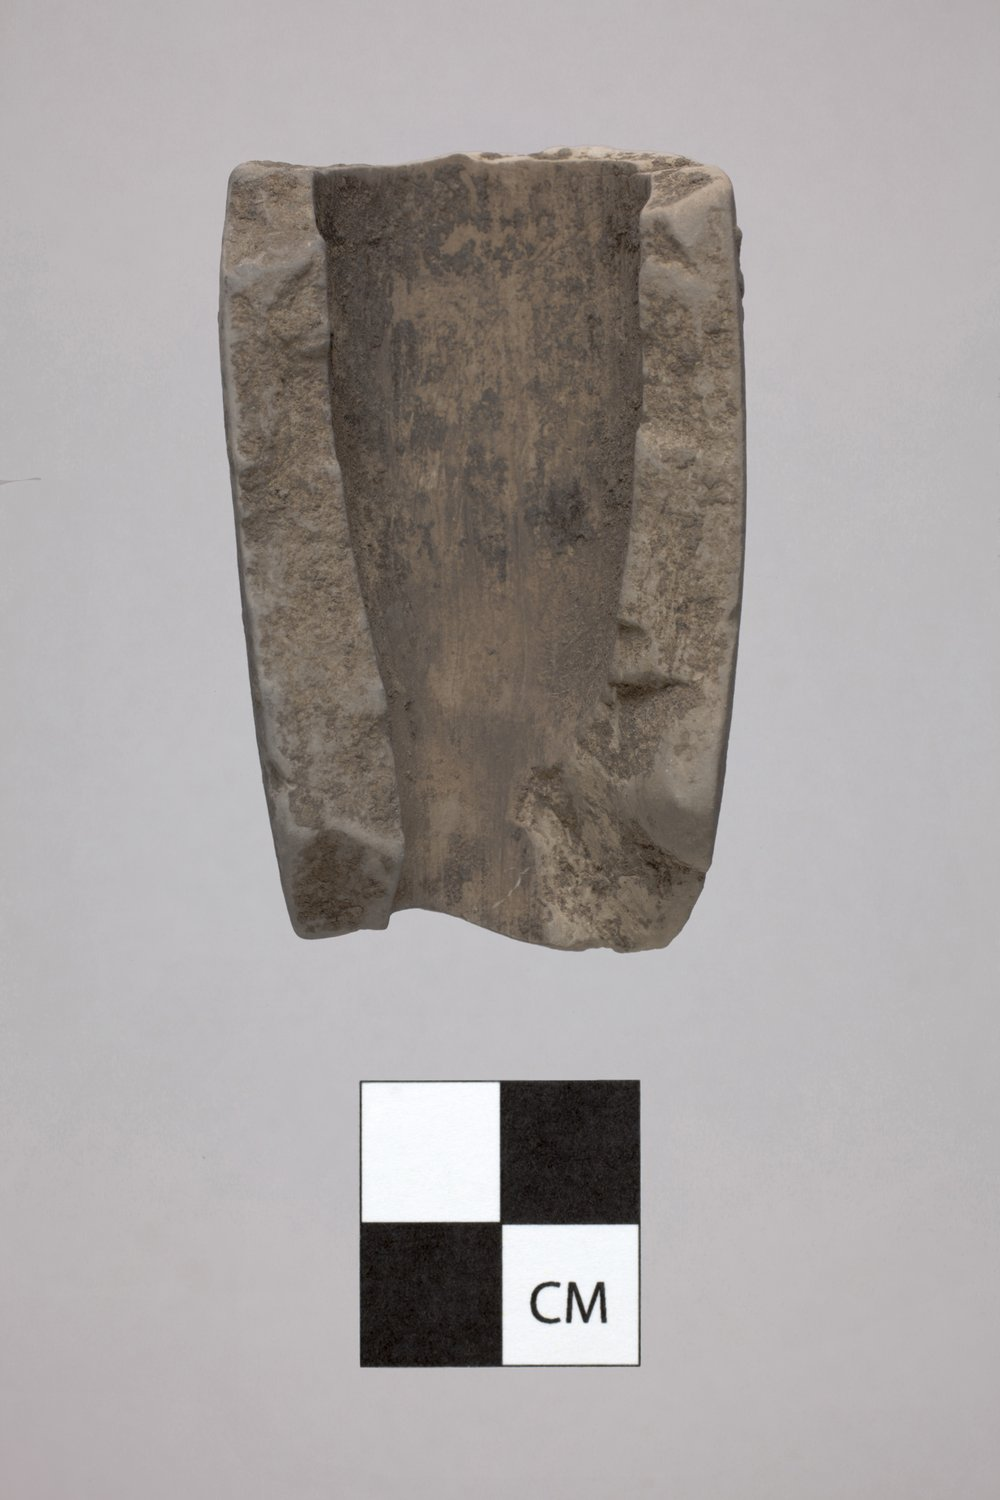 Ceramic Pipe from the Living the Dream Site, 14CO382 - 2